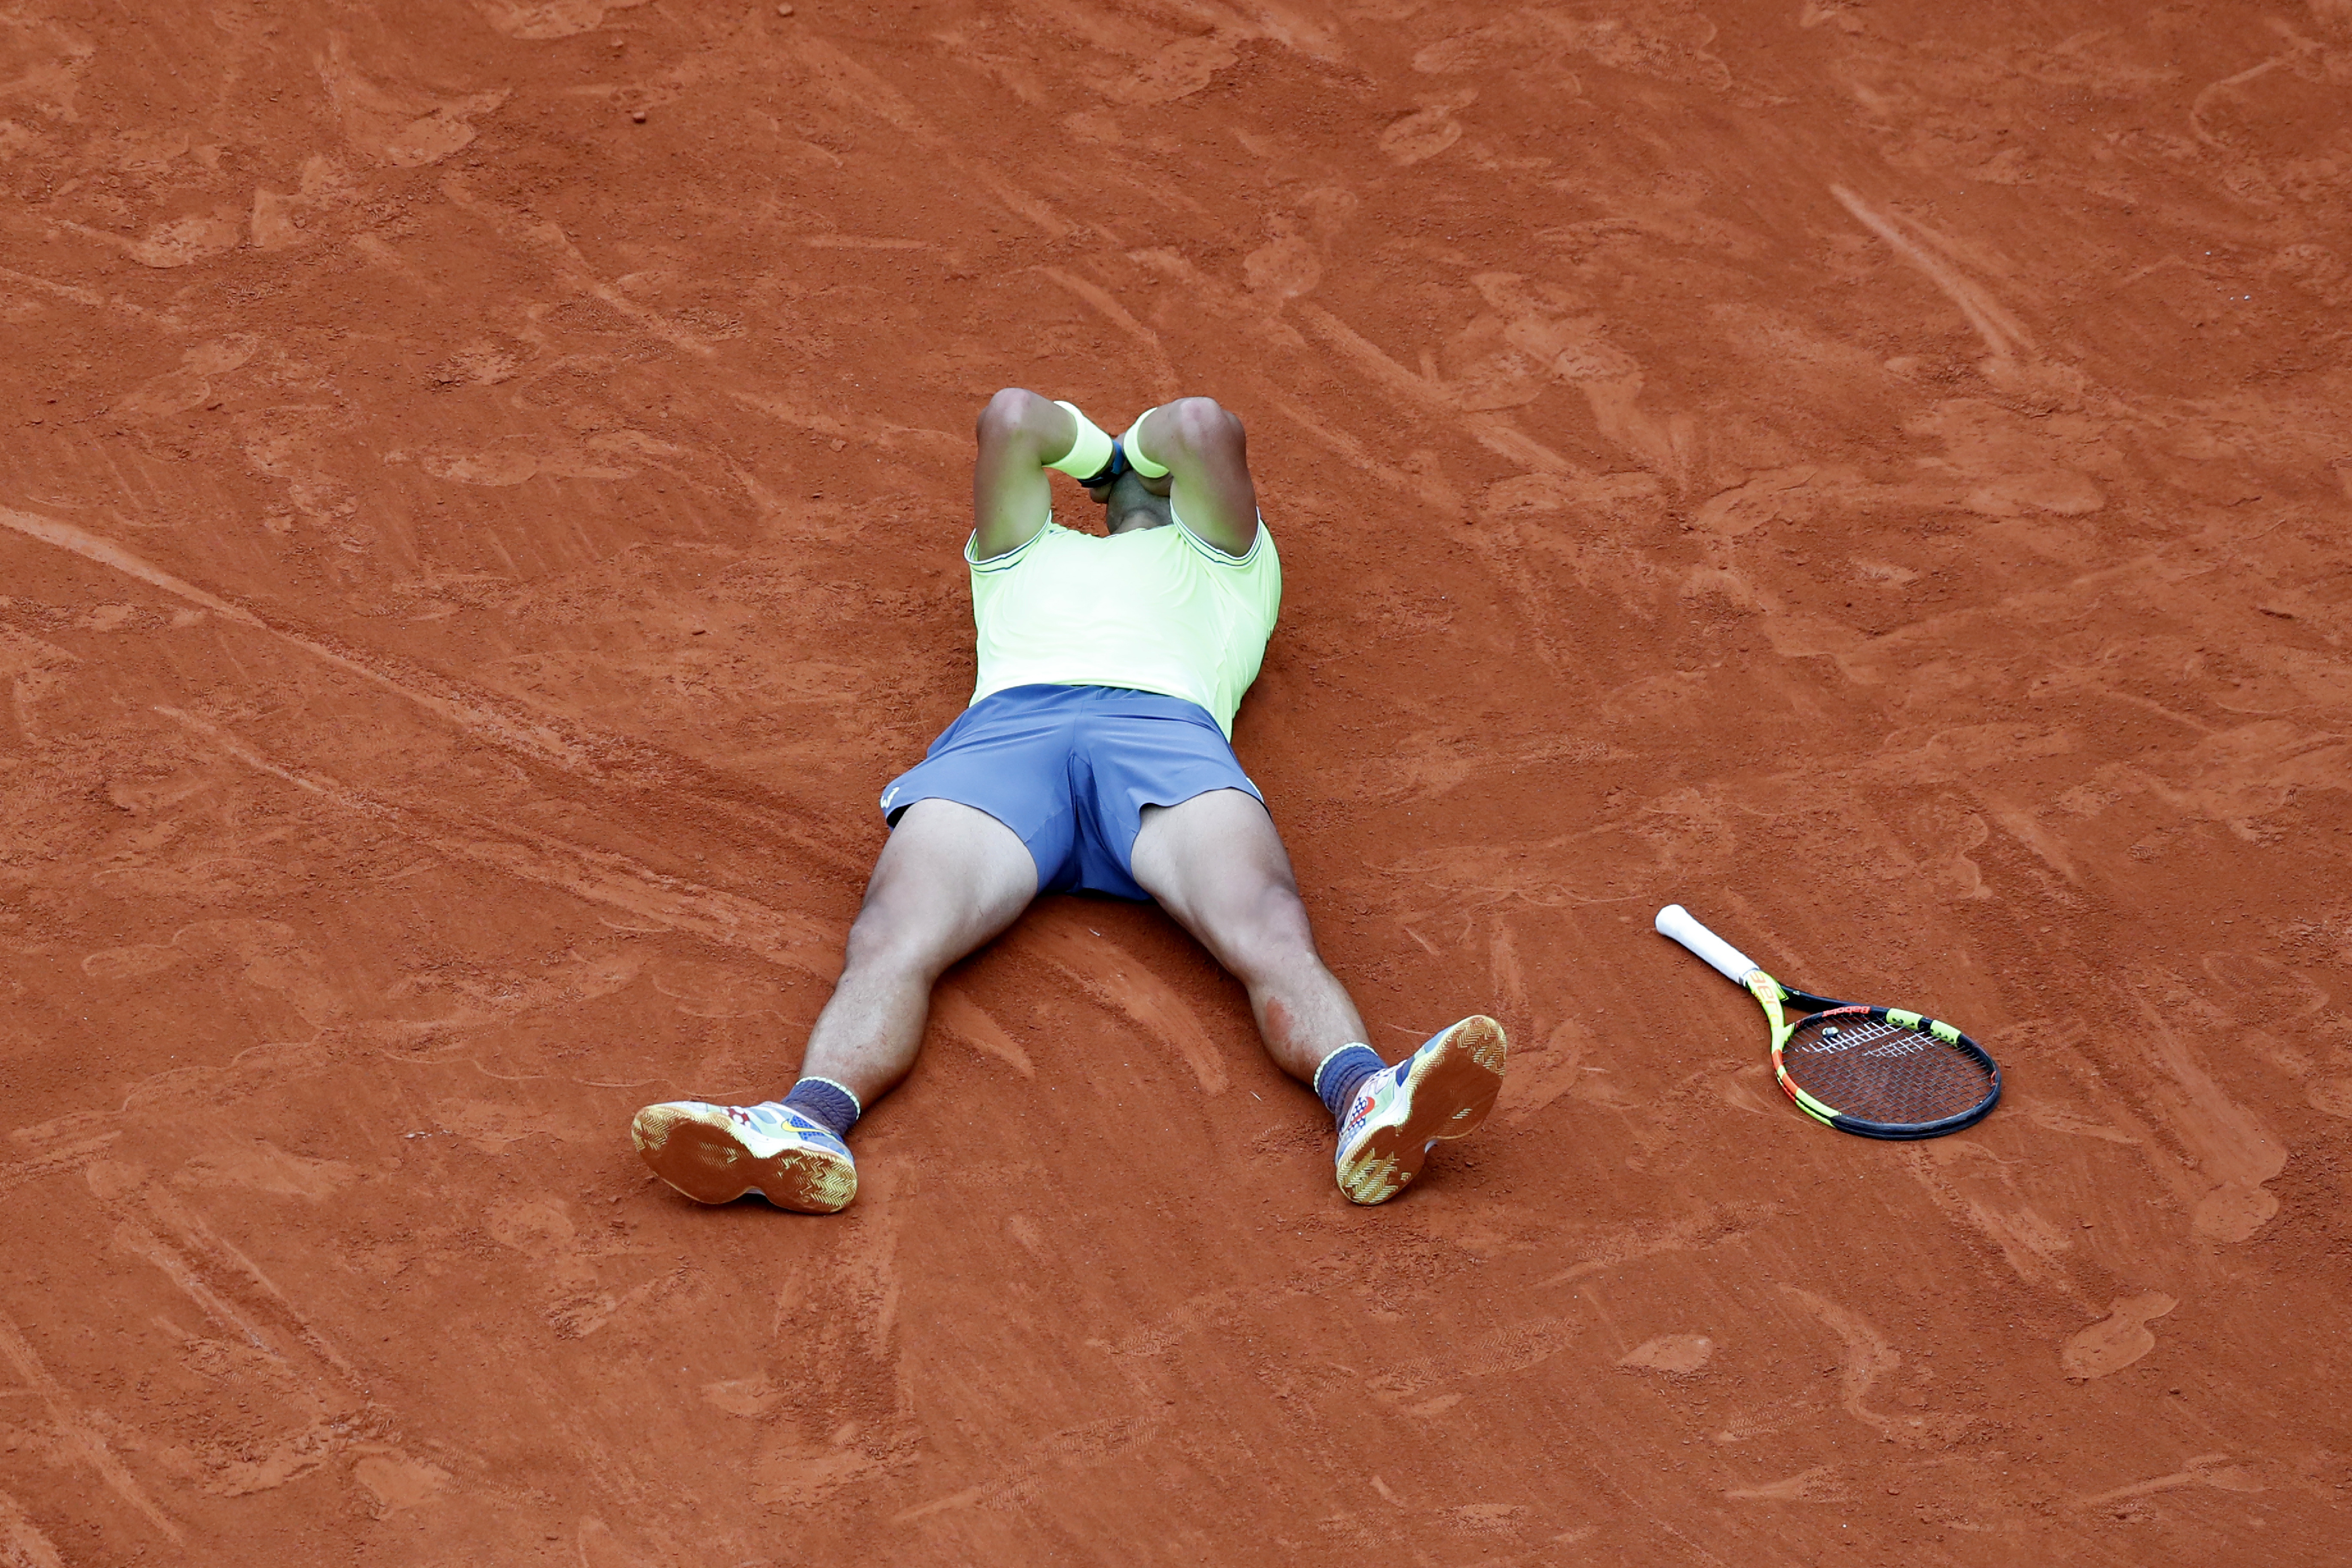 Nadal celebrates his victory on the clay. Image: PA Images